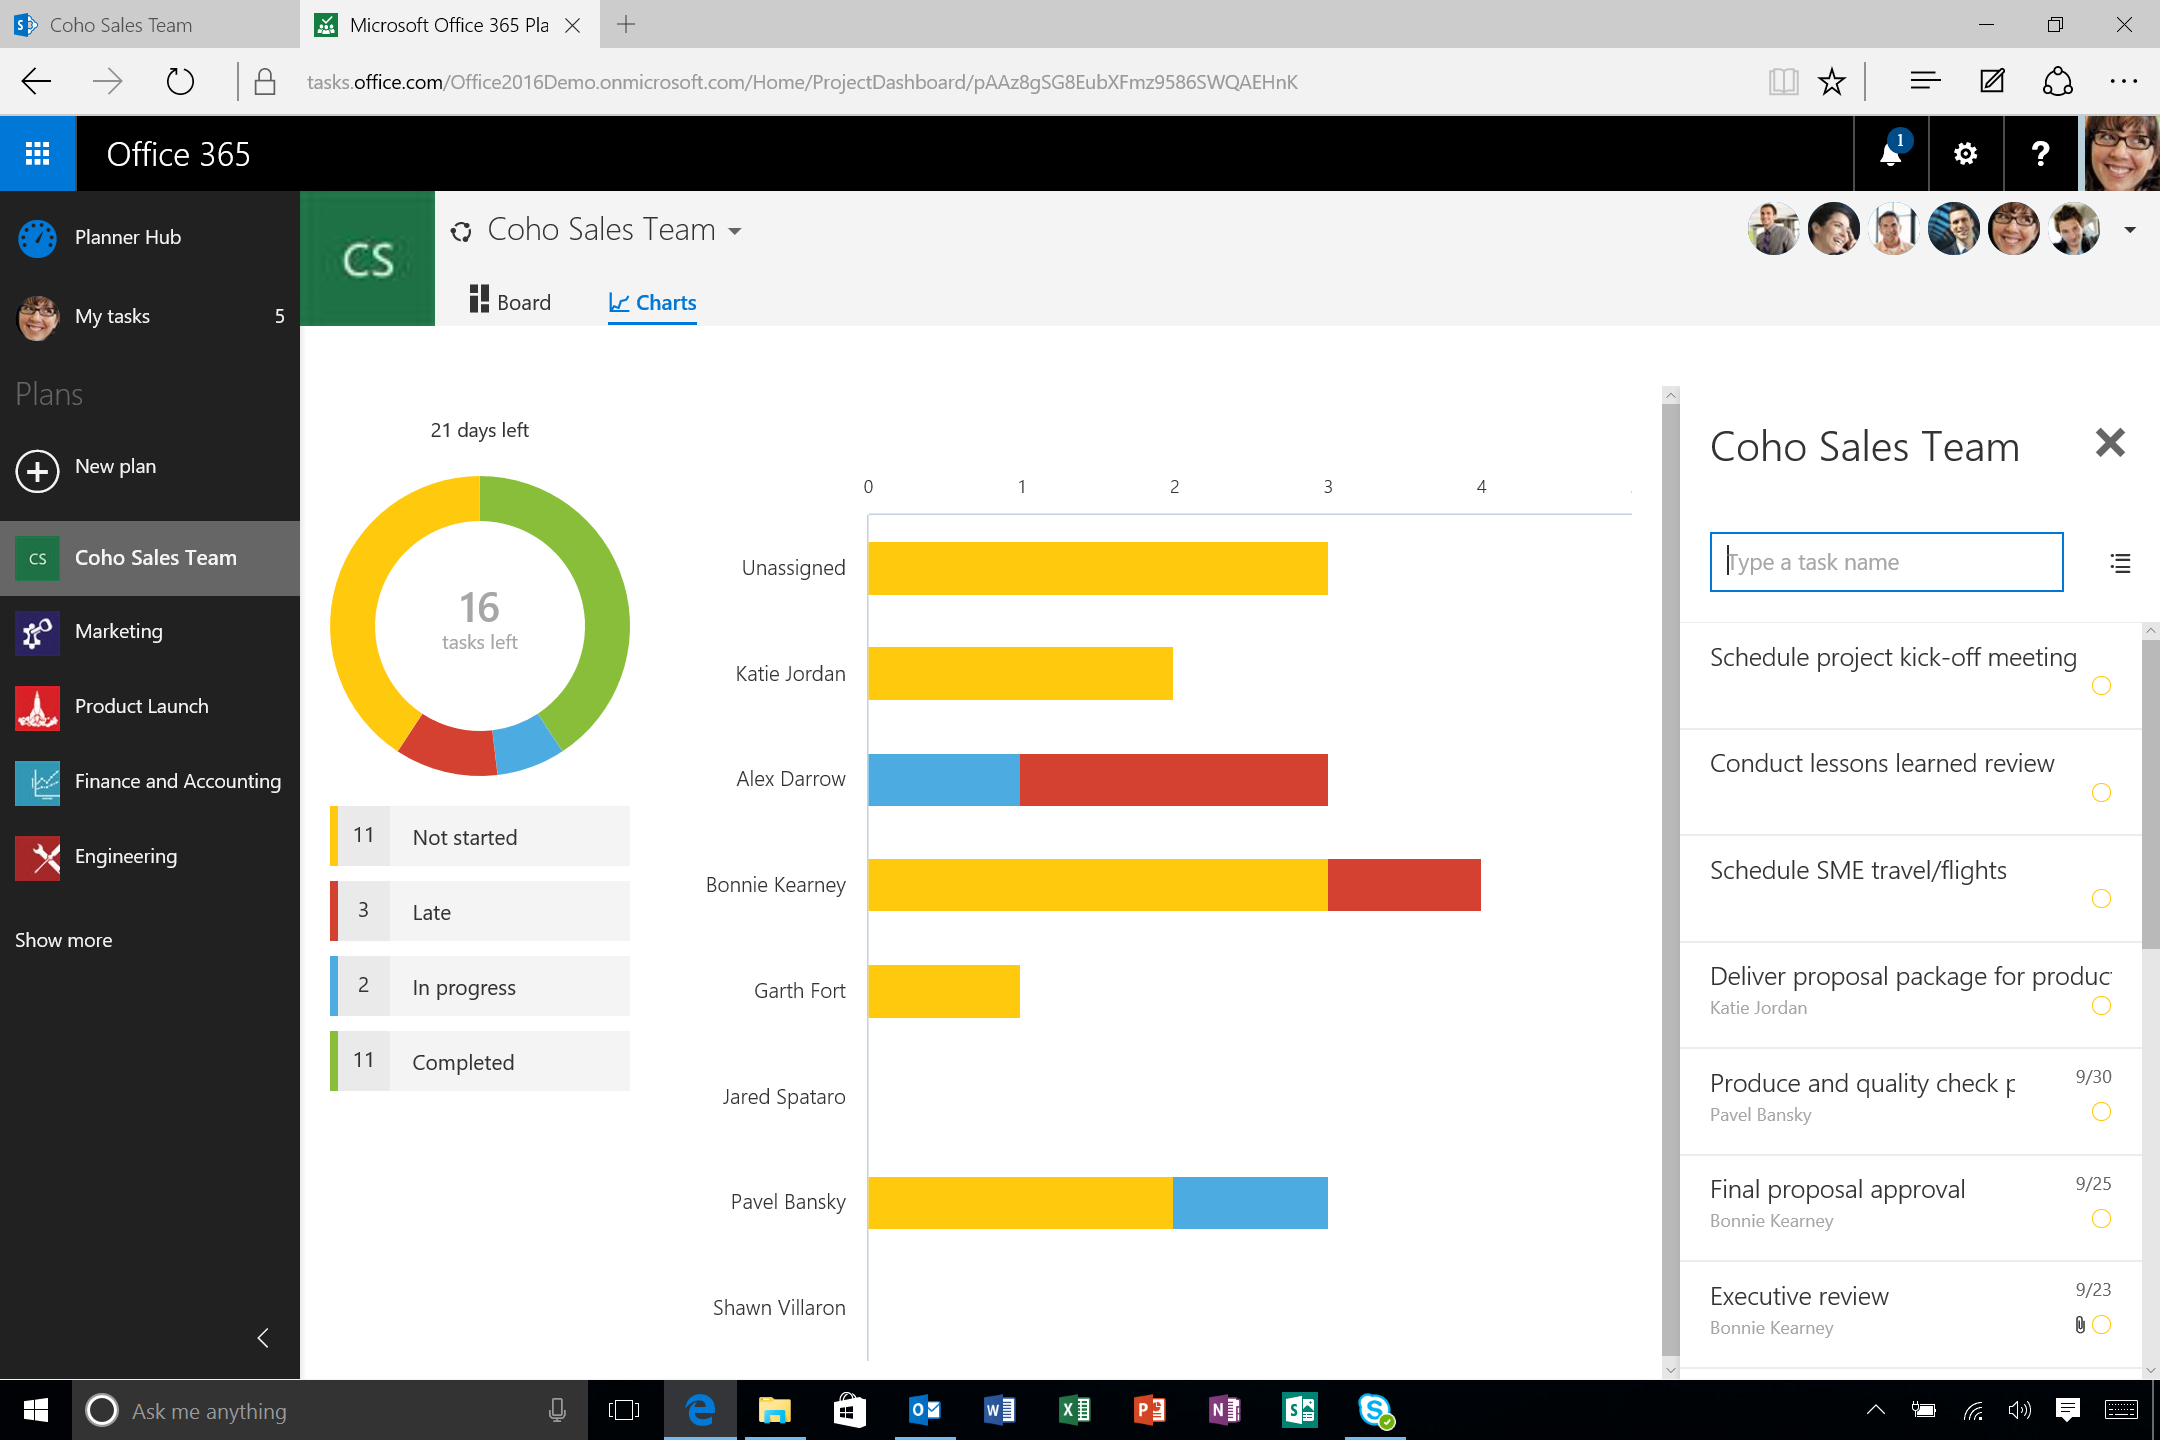 10. Office 365 Planner Charts View